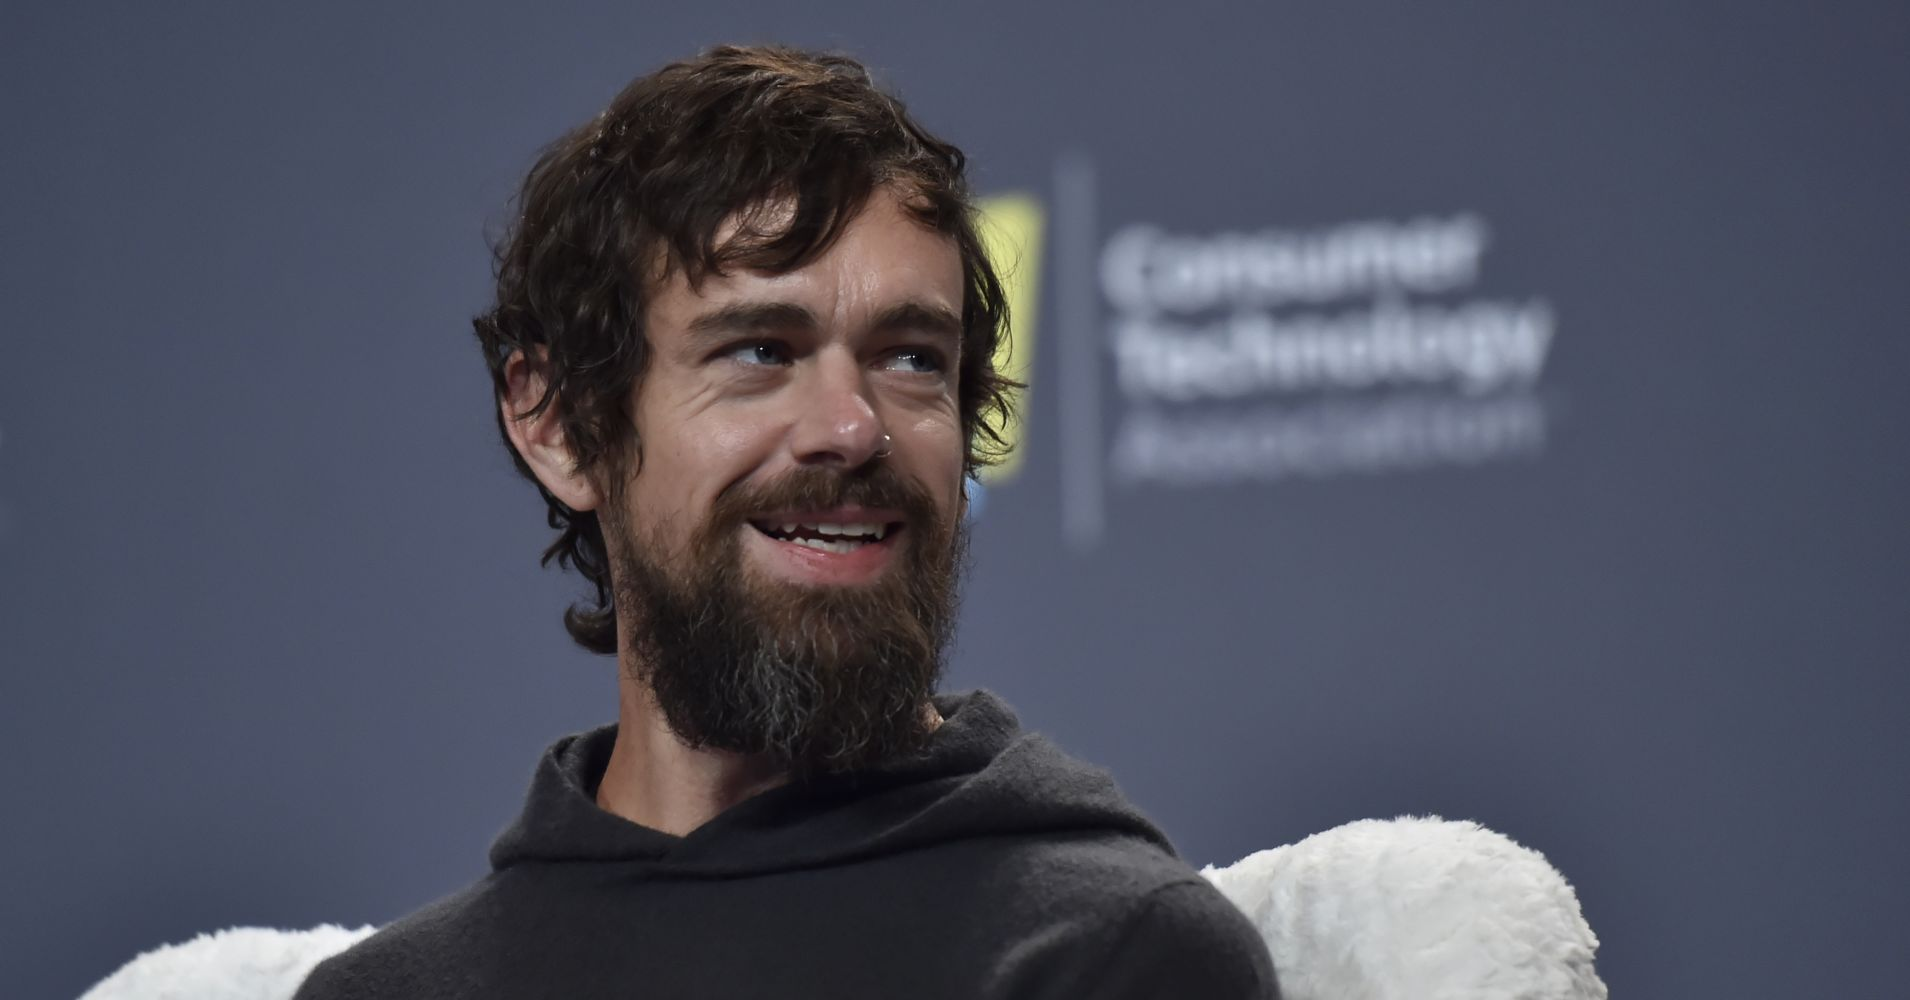 Twitter CEO Jack Dorsey paid $1.40 in 2018